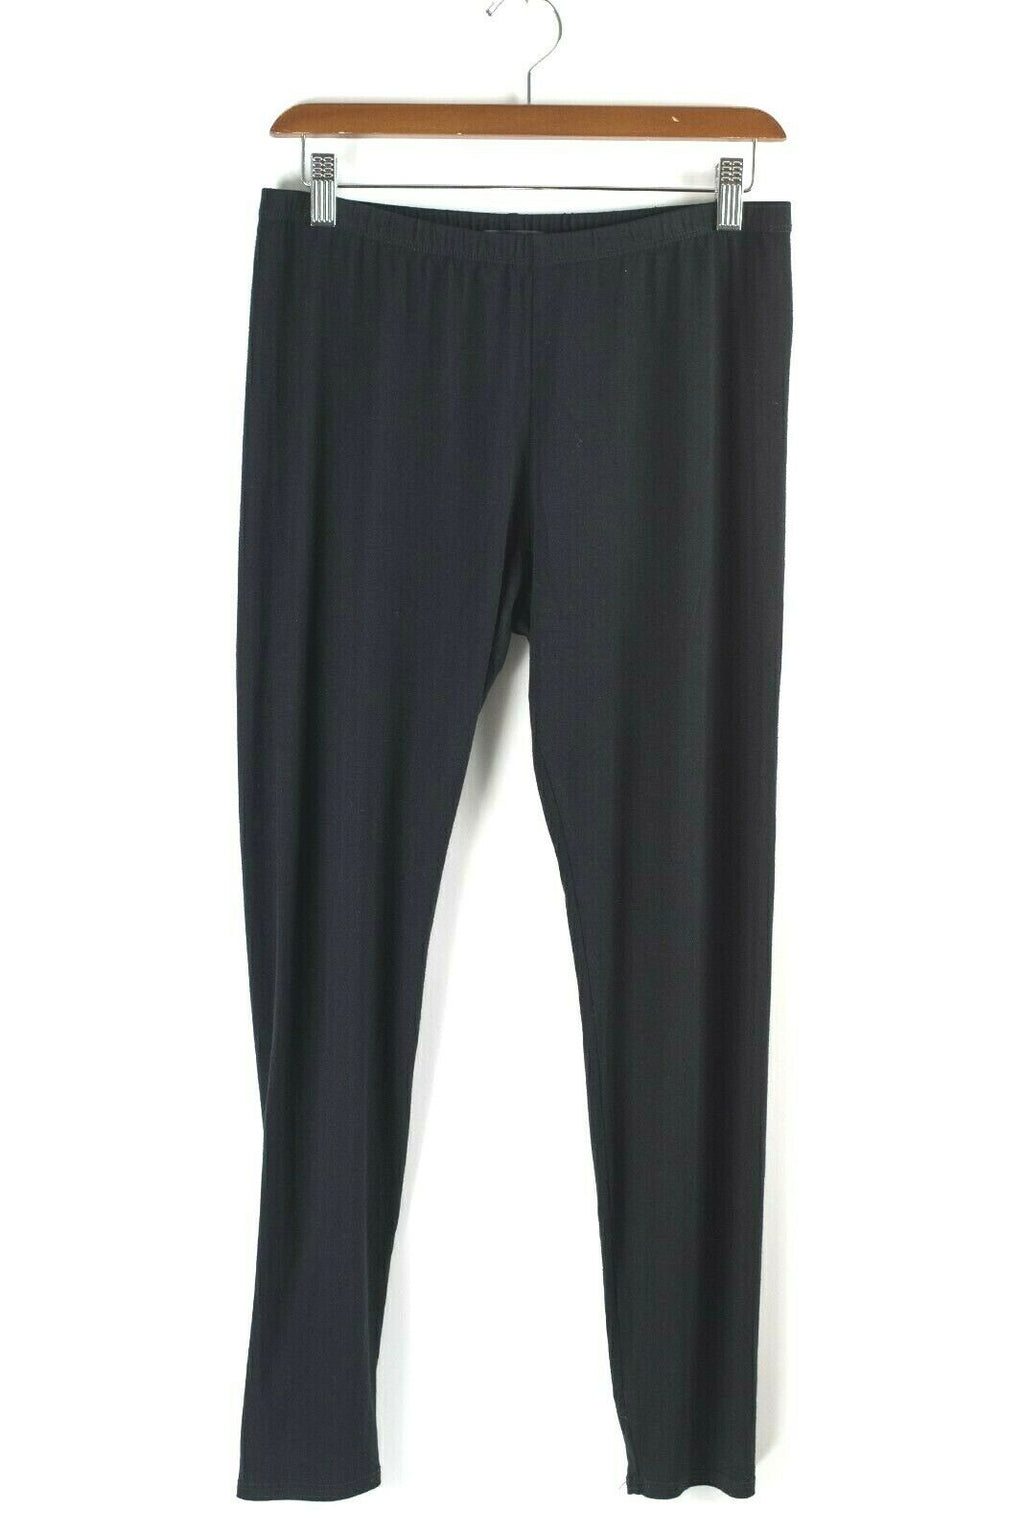 Eileen Fisher Medium Black Pants Jersey Knit Elastic Waist Stretch Crop Leggings